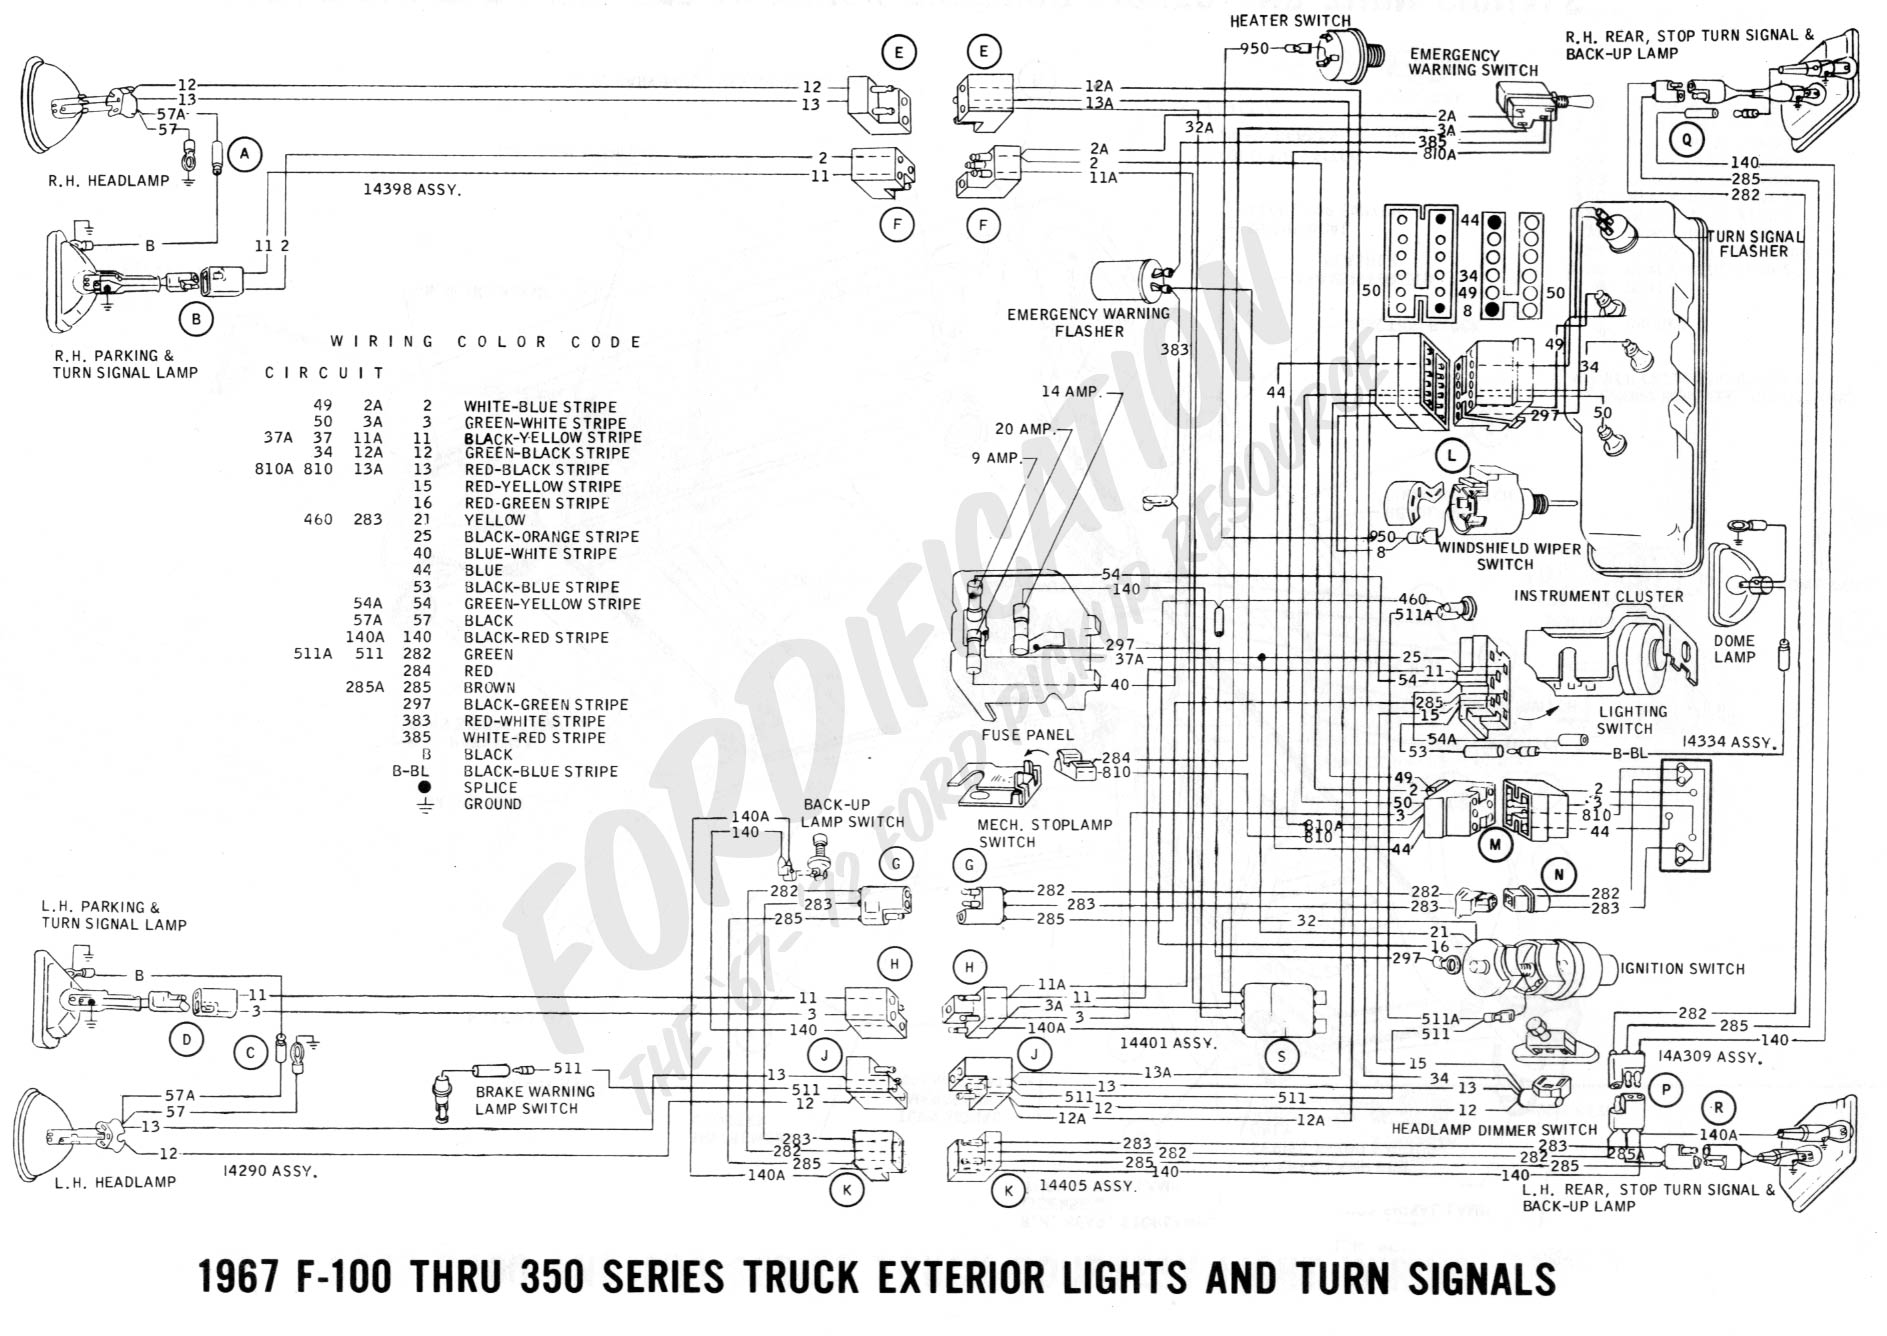 scion xb wiring diagram wiring diagram and schematic design 2004 scion xb wiring diagram manual original